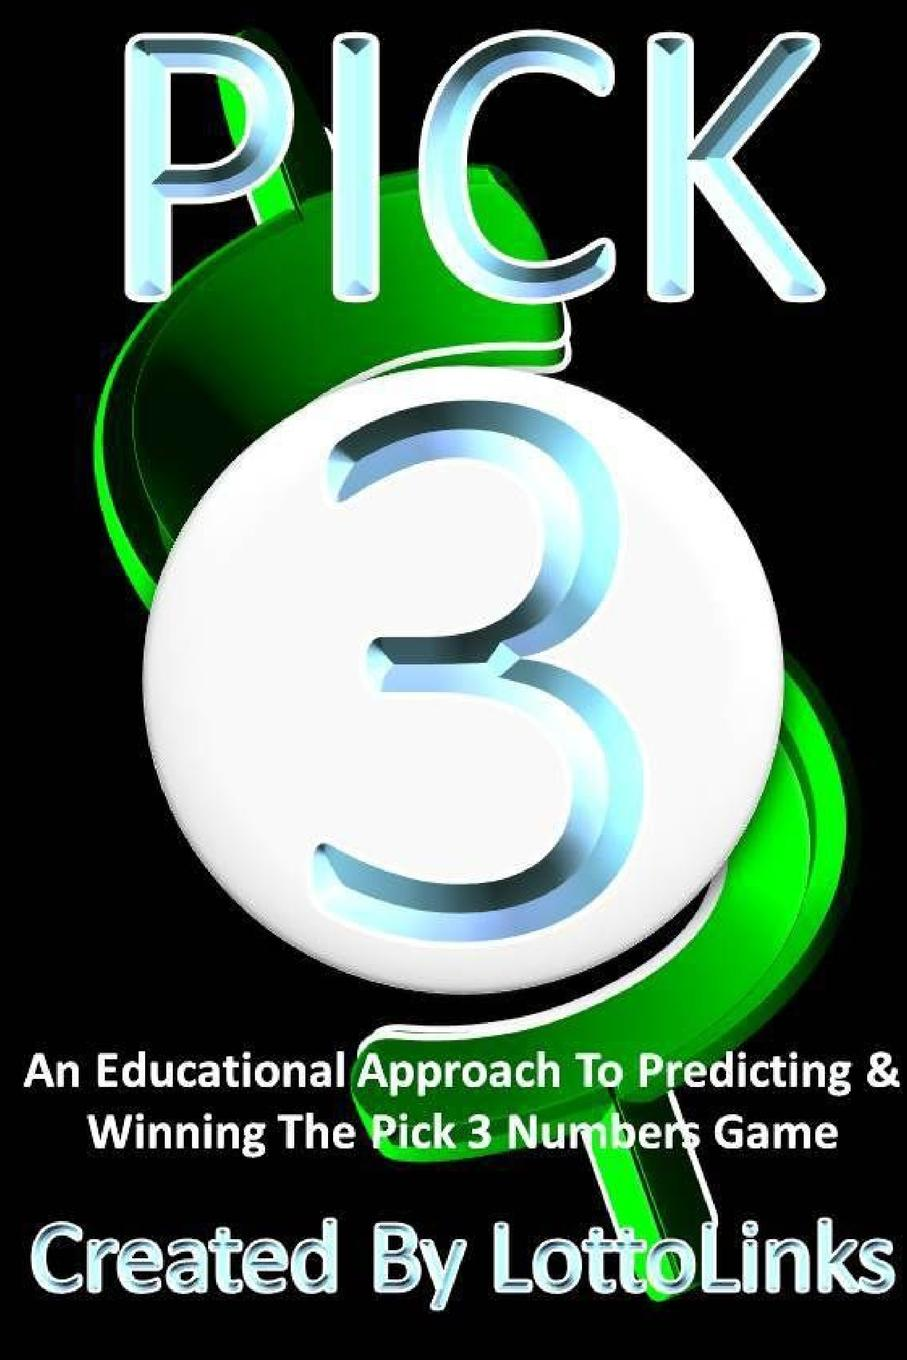 Lotto Links An Educational Approach to Predicting . Winning the Pick 3 Numbers Game free shipping kayipht cm400ha1 24h can directly buy or contact the seller